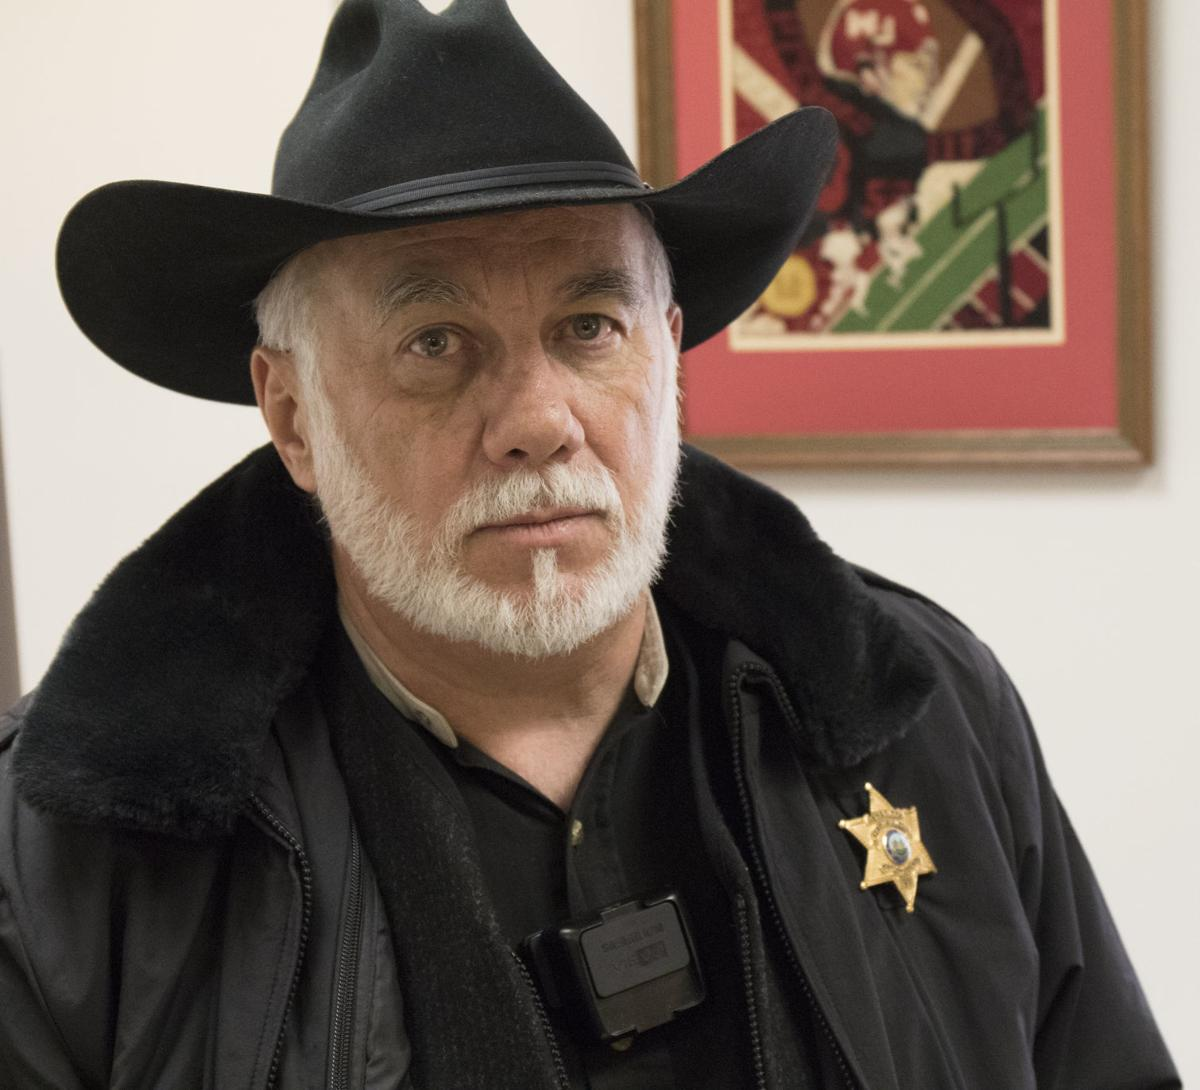 Sheriff Terry Austin